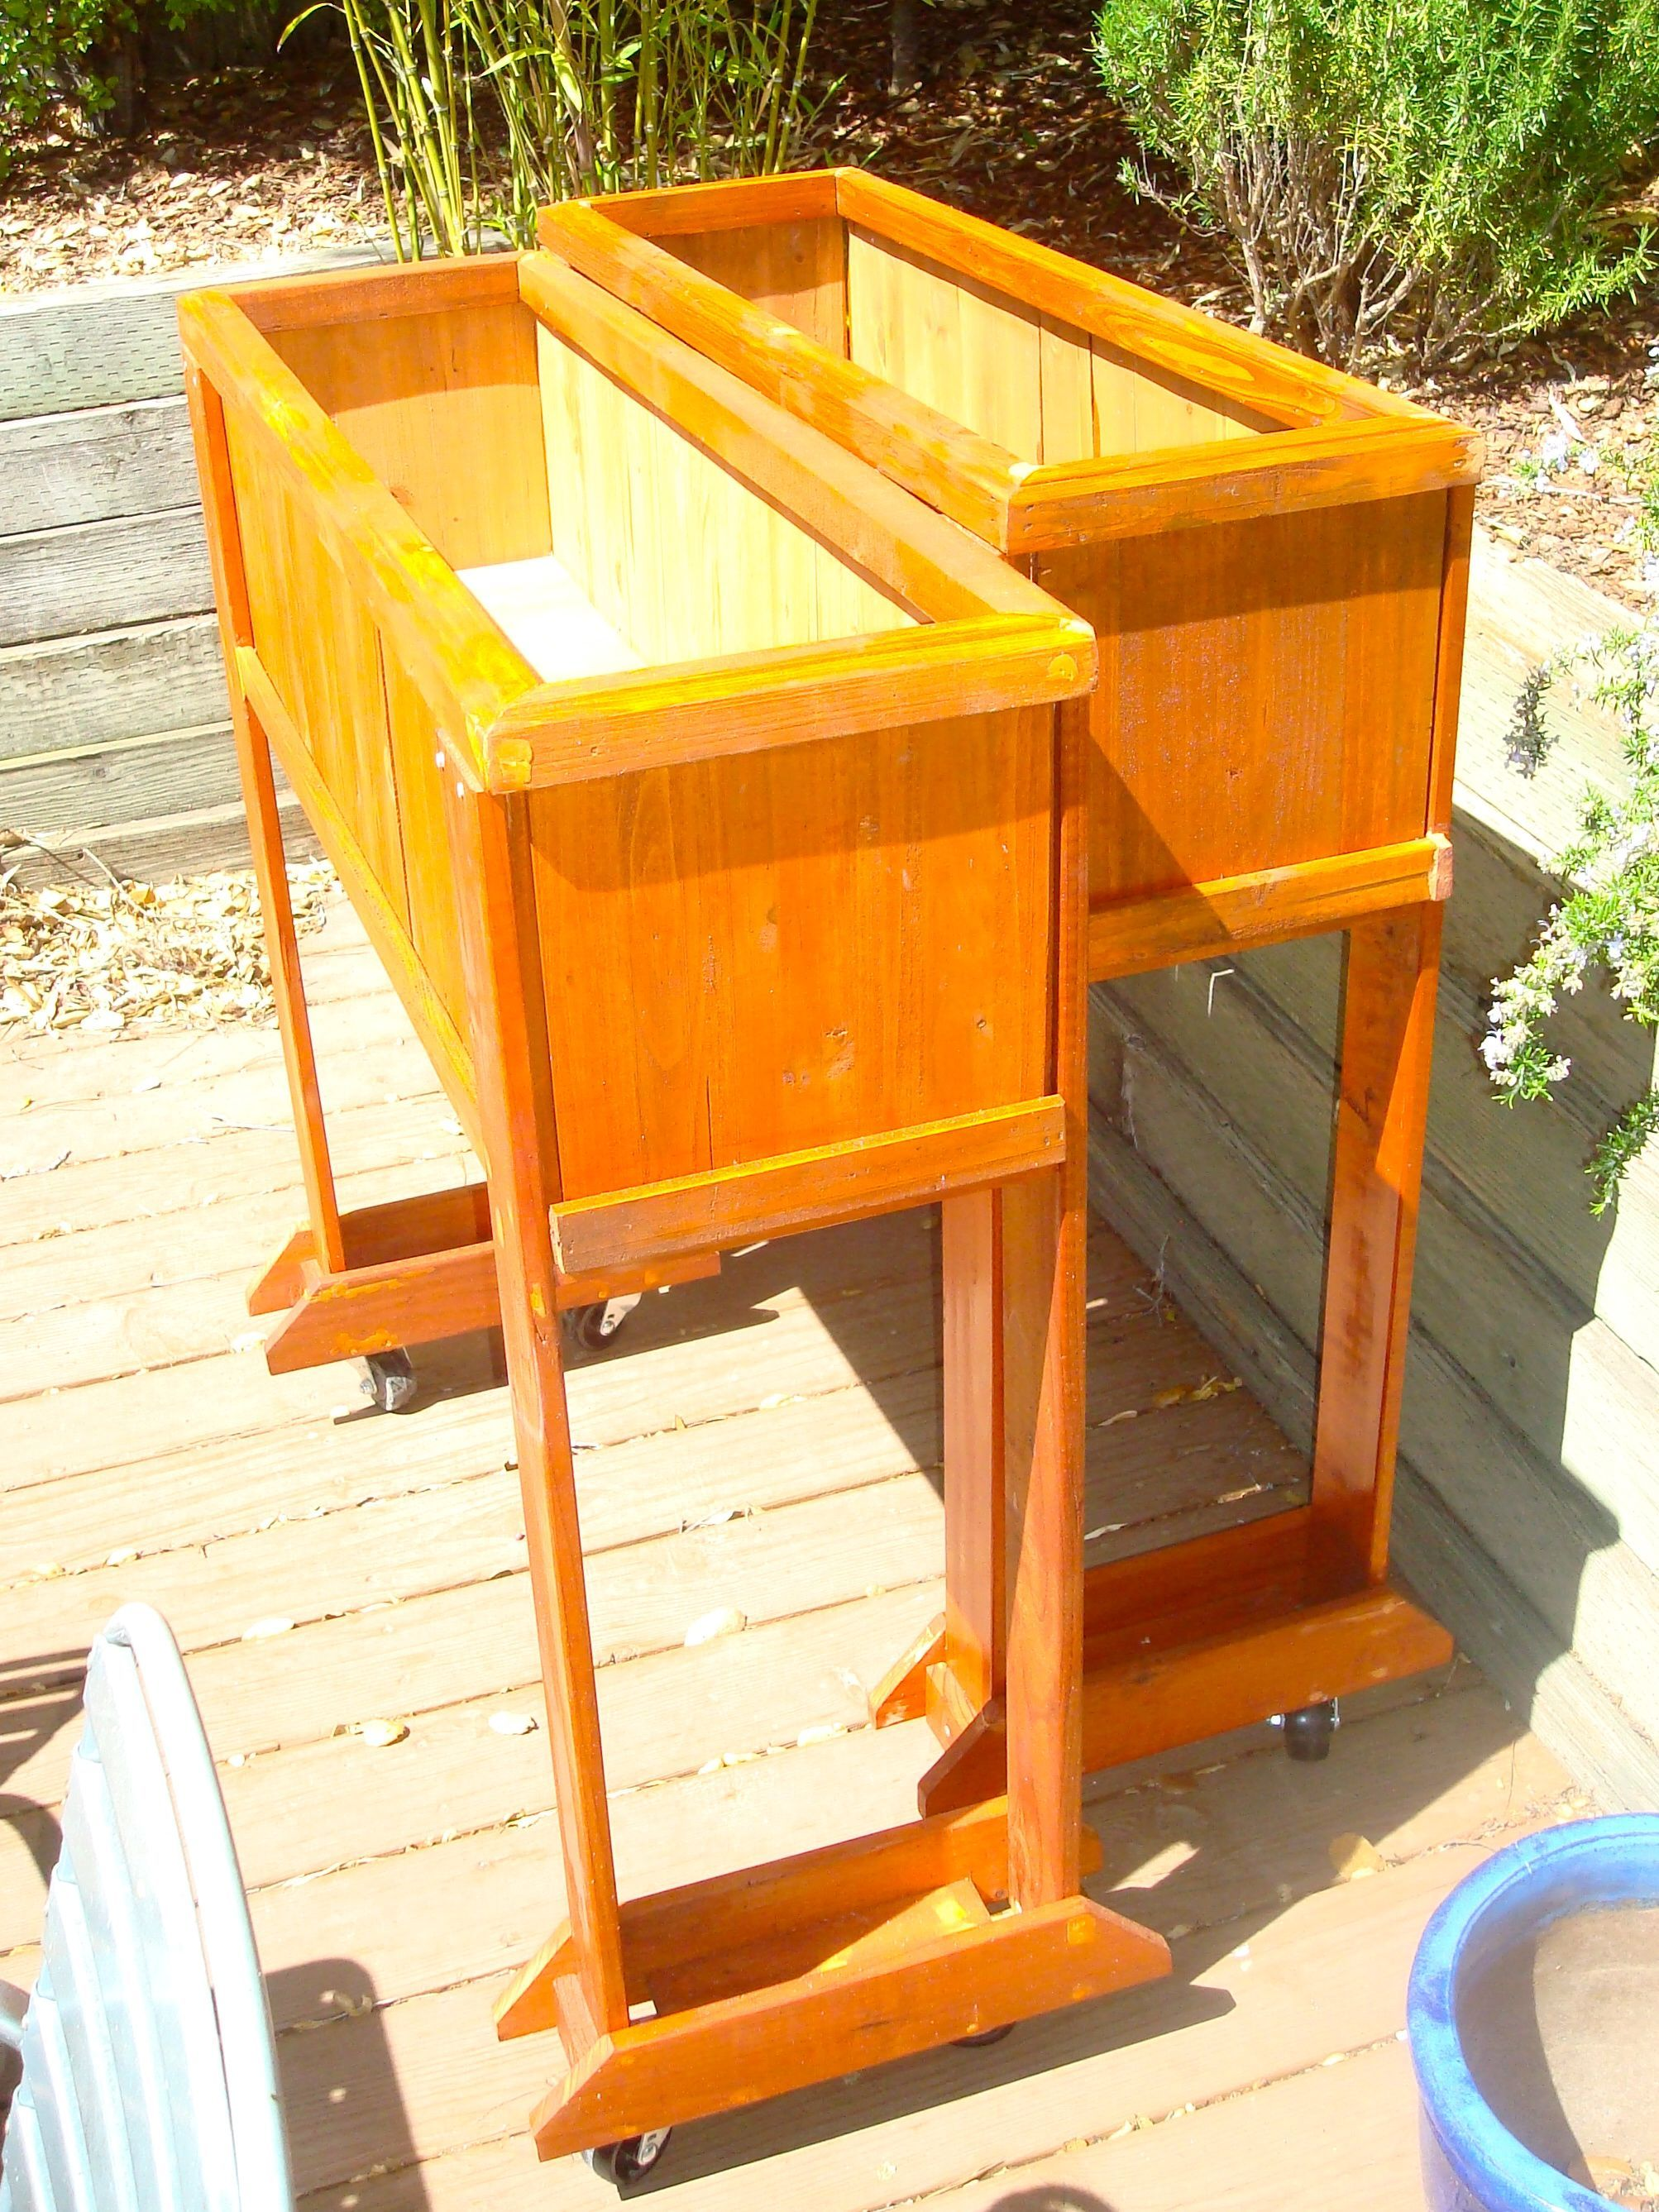 Raised veggies planters are ready for work. Added casters to wheel them around to sunny spots.